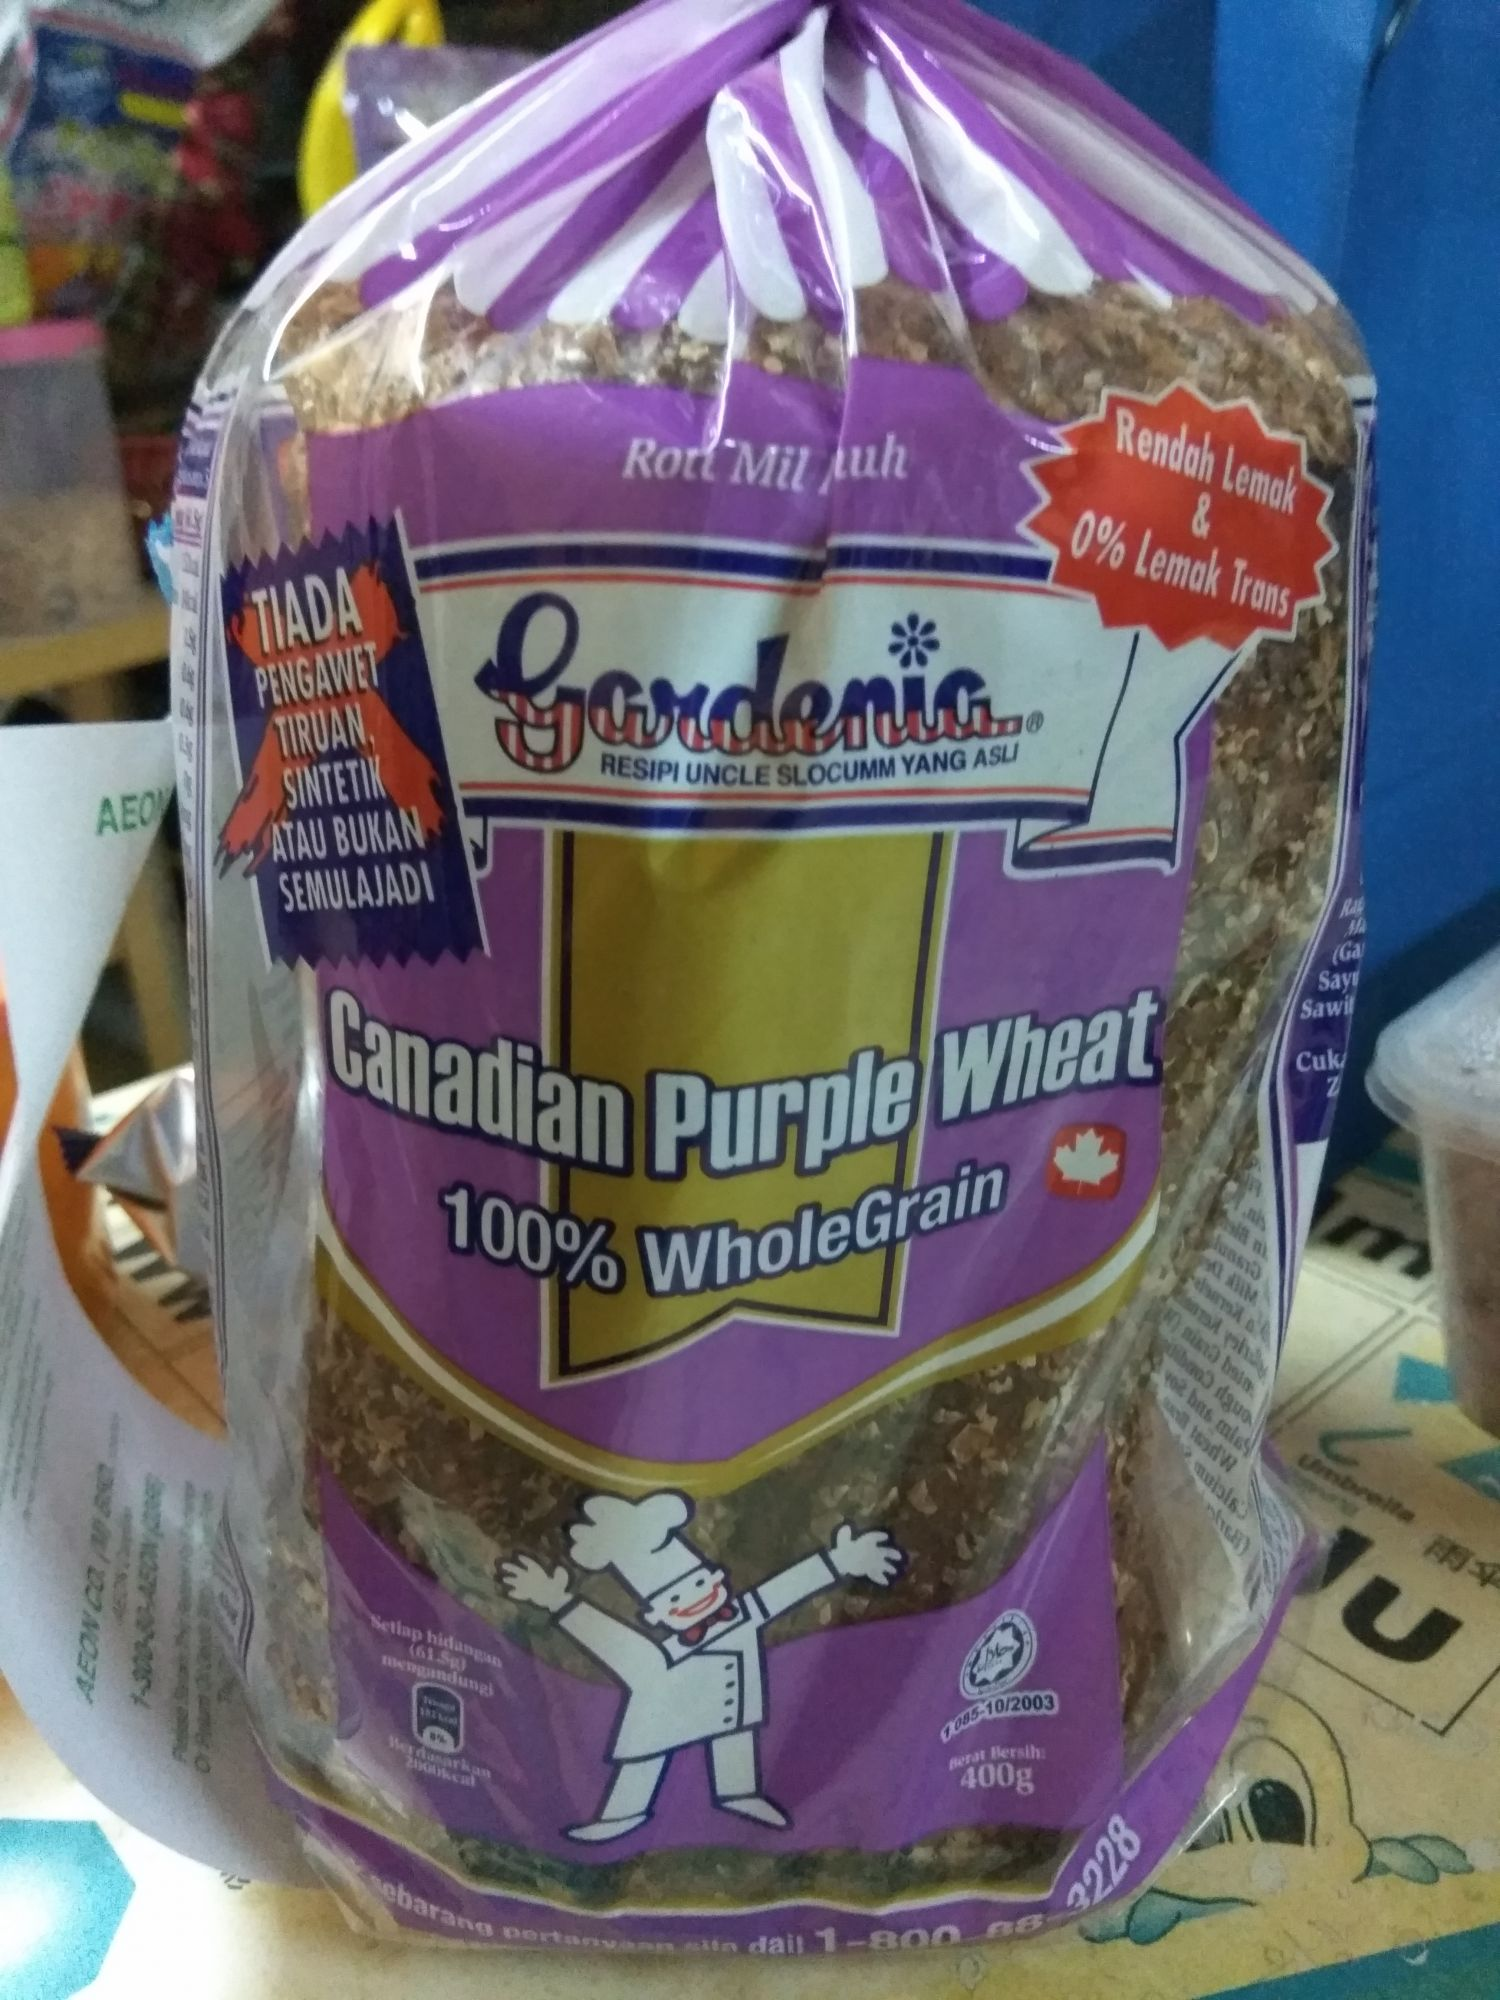 Gardenia 100 Wholegrain With Canadian Purple Wheat